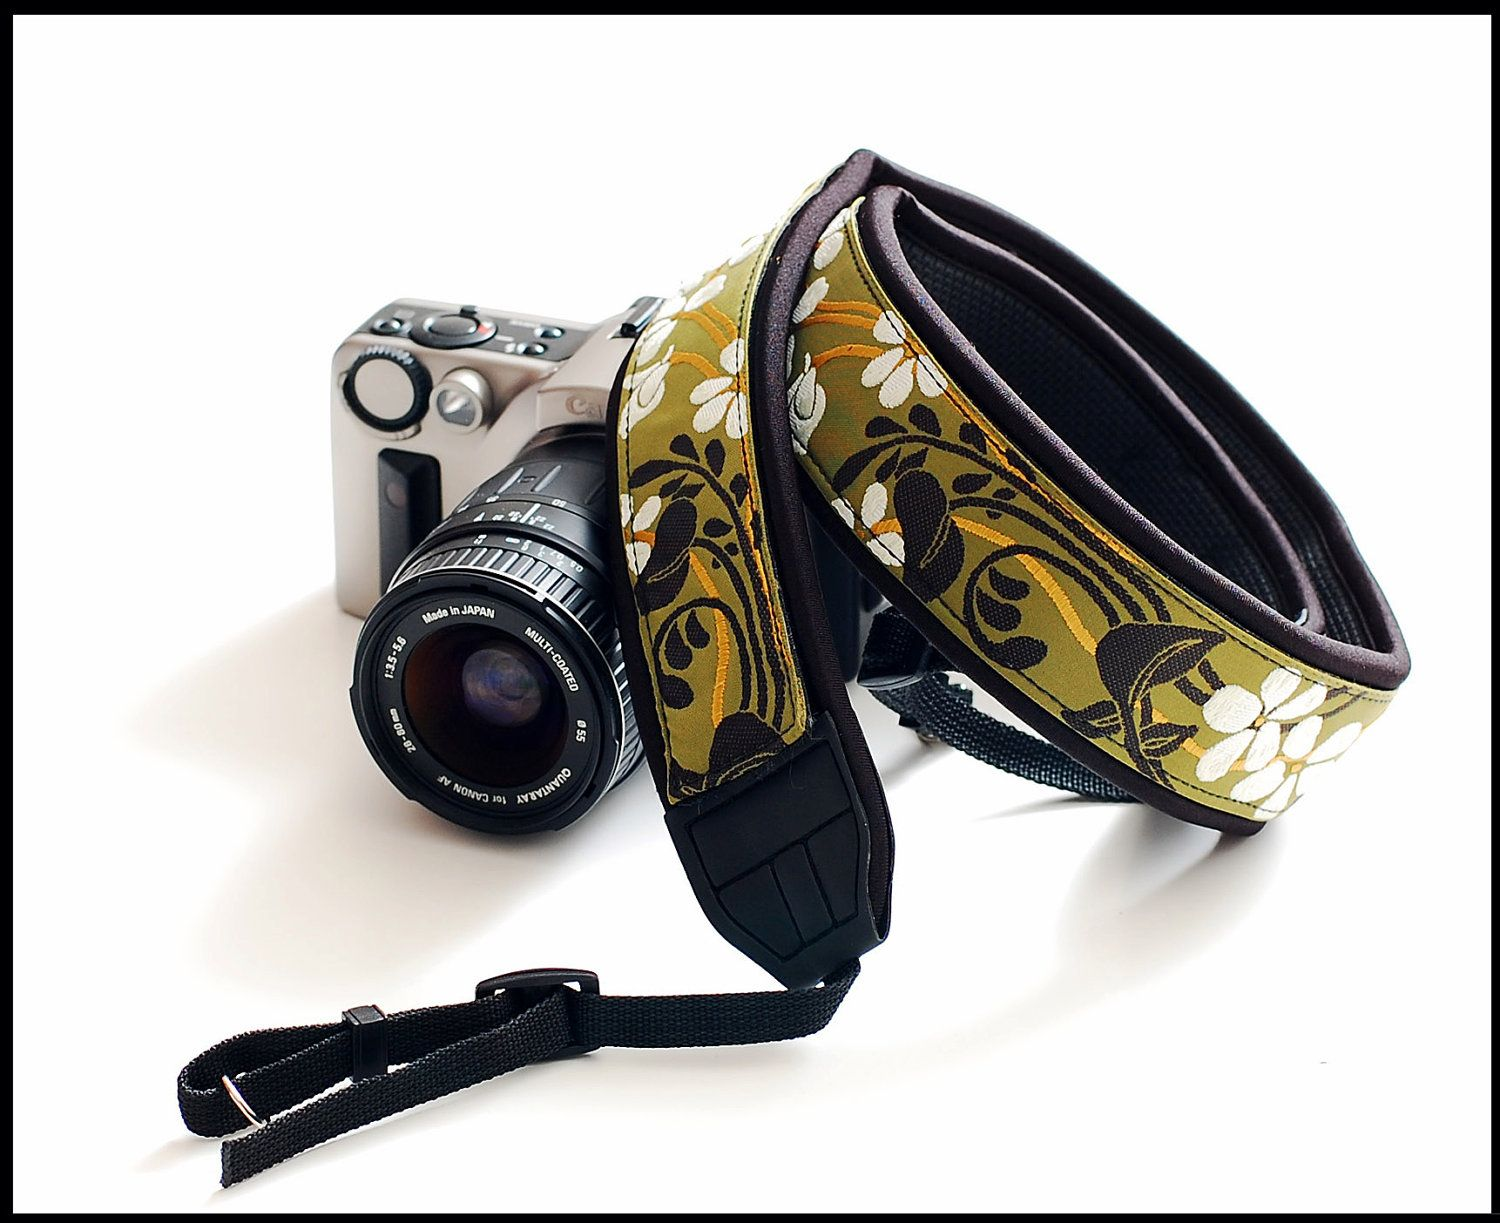 New camera strap in Interchangeable Design   - Olive delight  -  Custom Camera strap. $42.99, via Etsy.